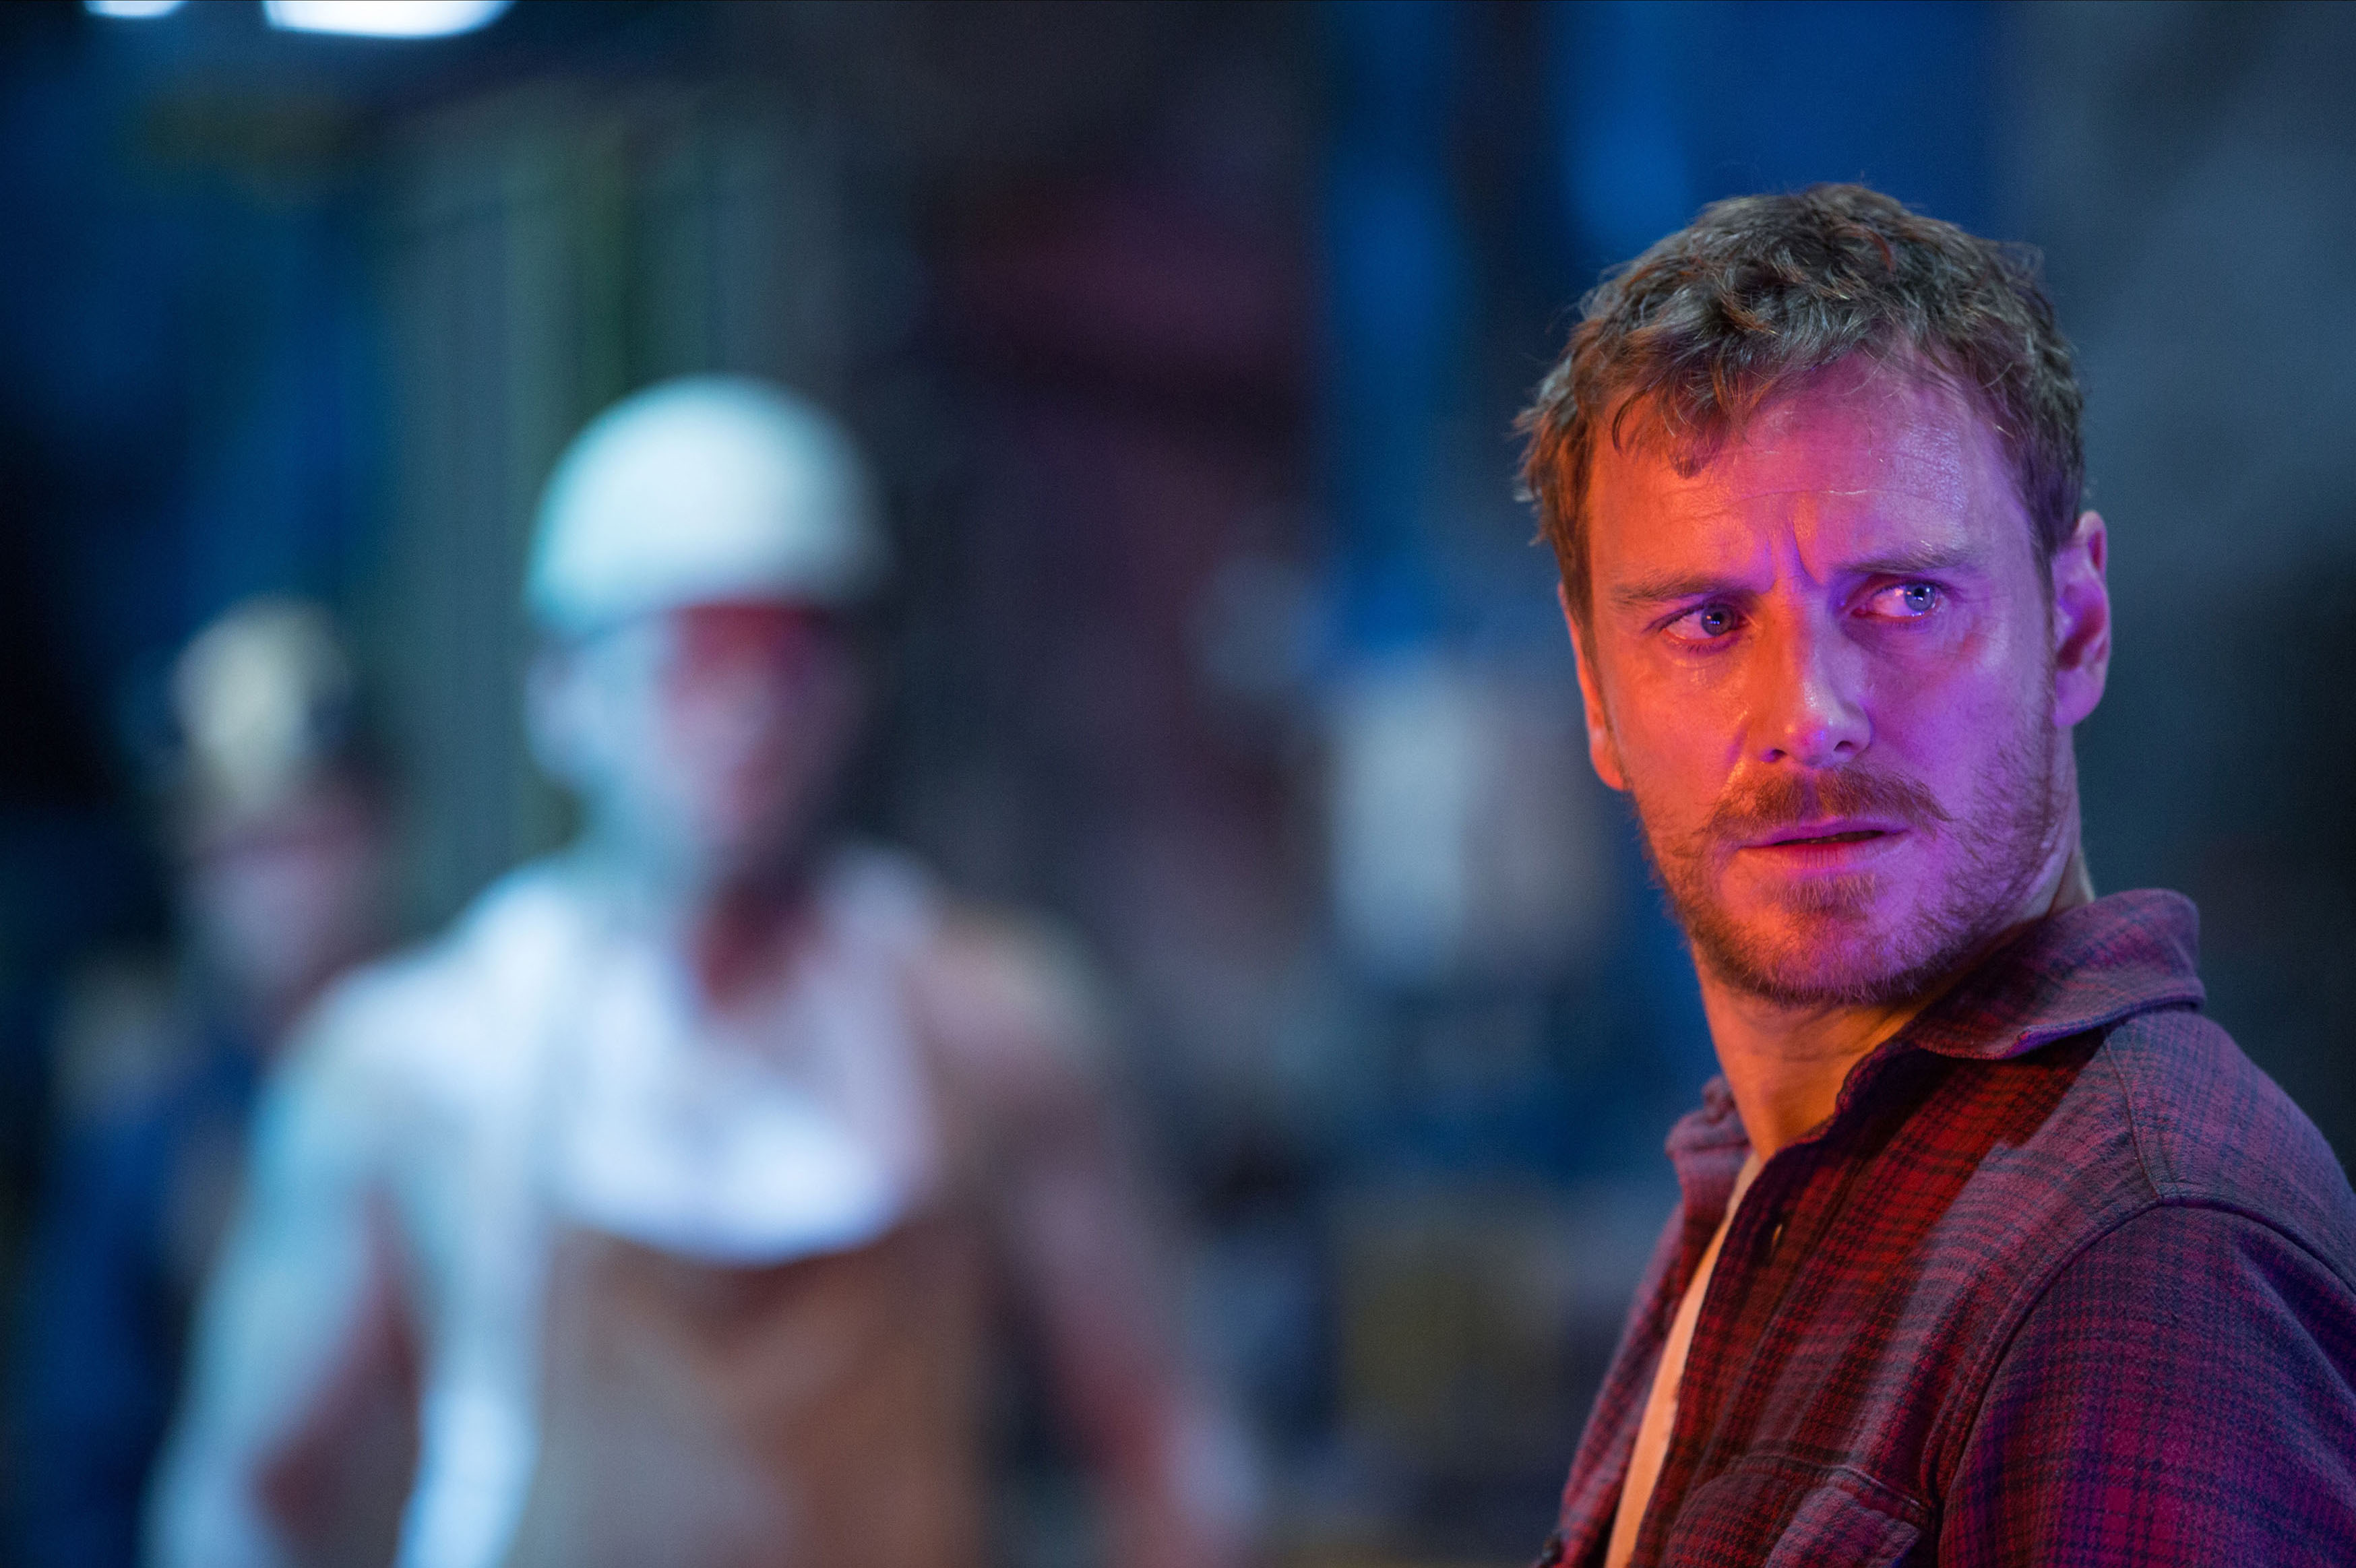 DF-02179 Michael Fassbender as Erik Lensherr / Magneto in X-MEN: APOCALYPSE.